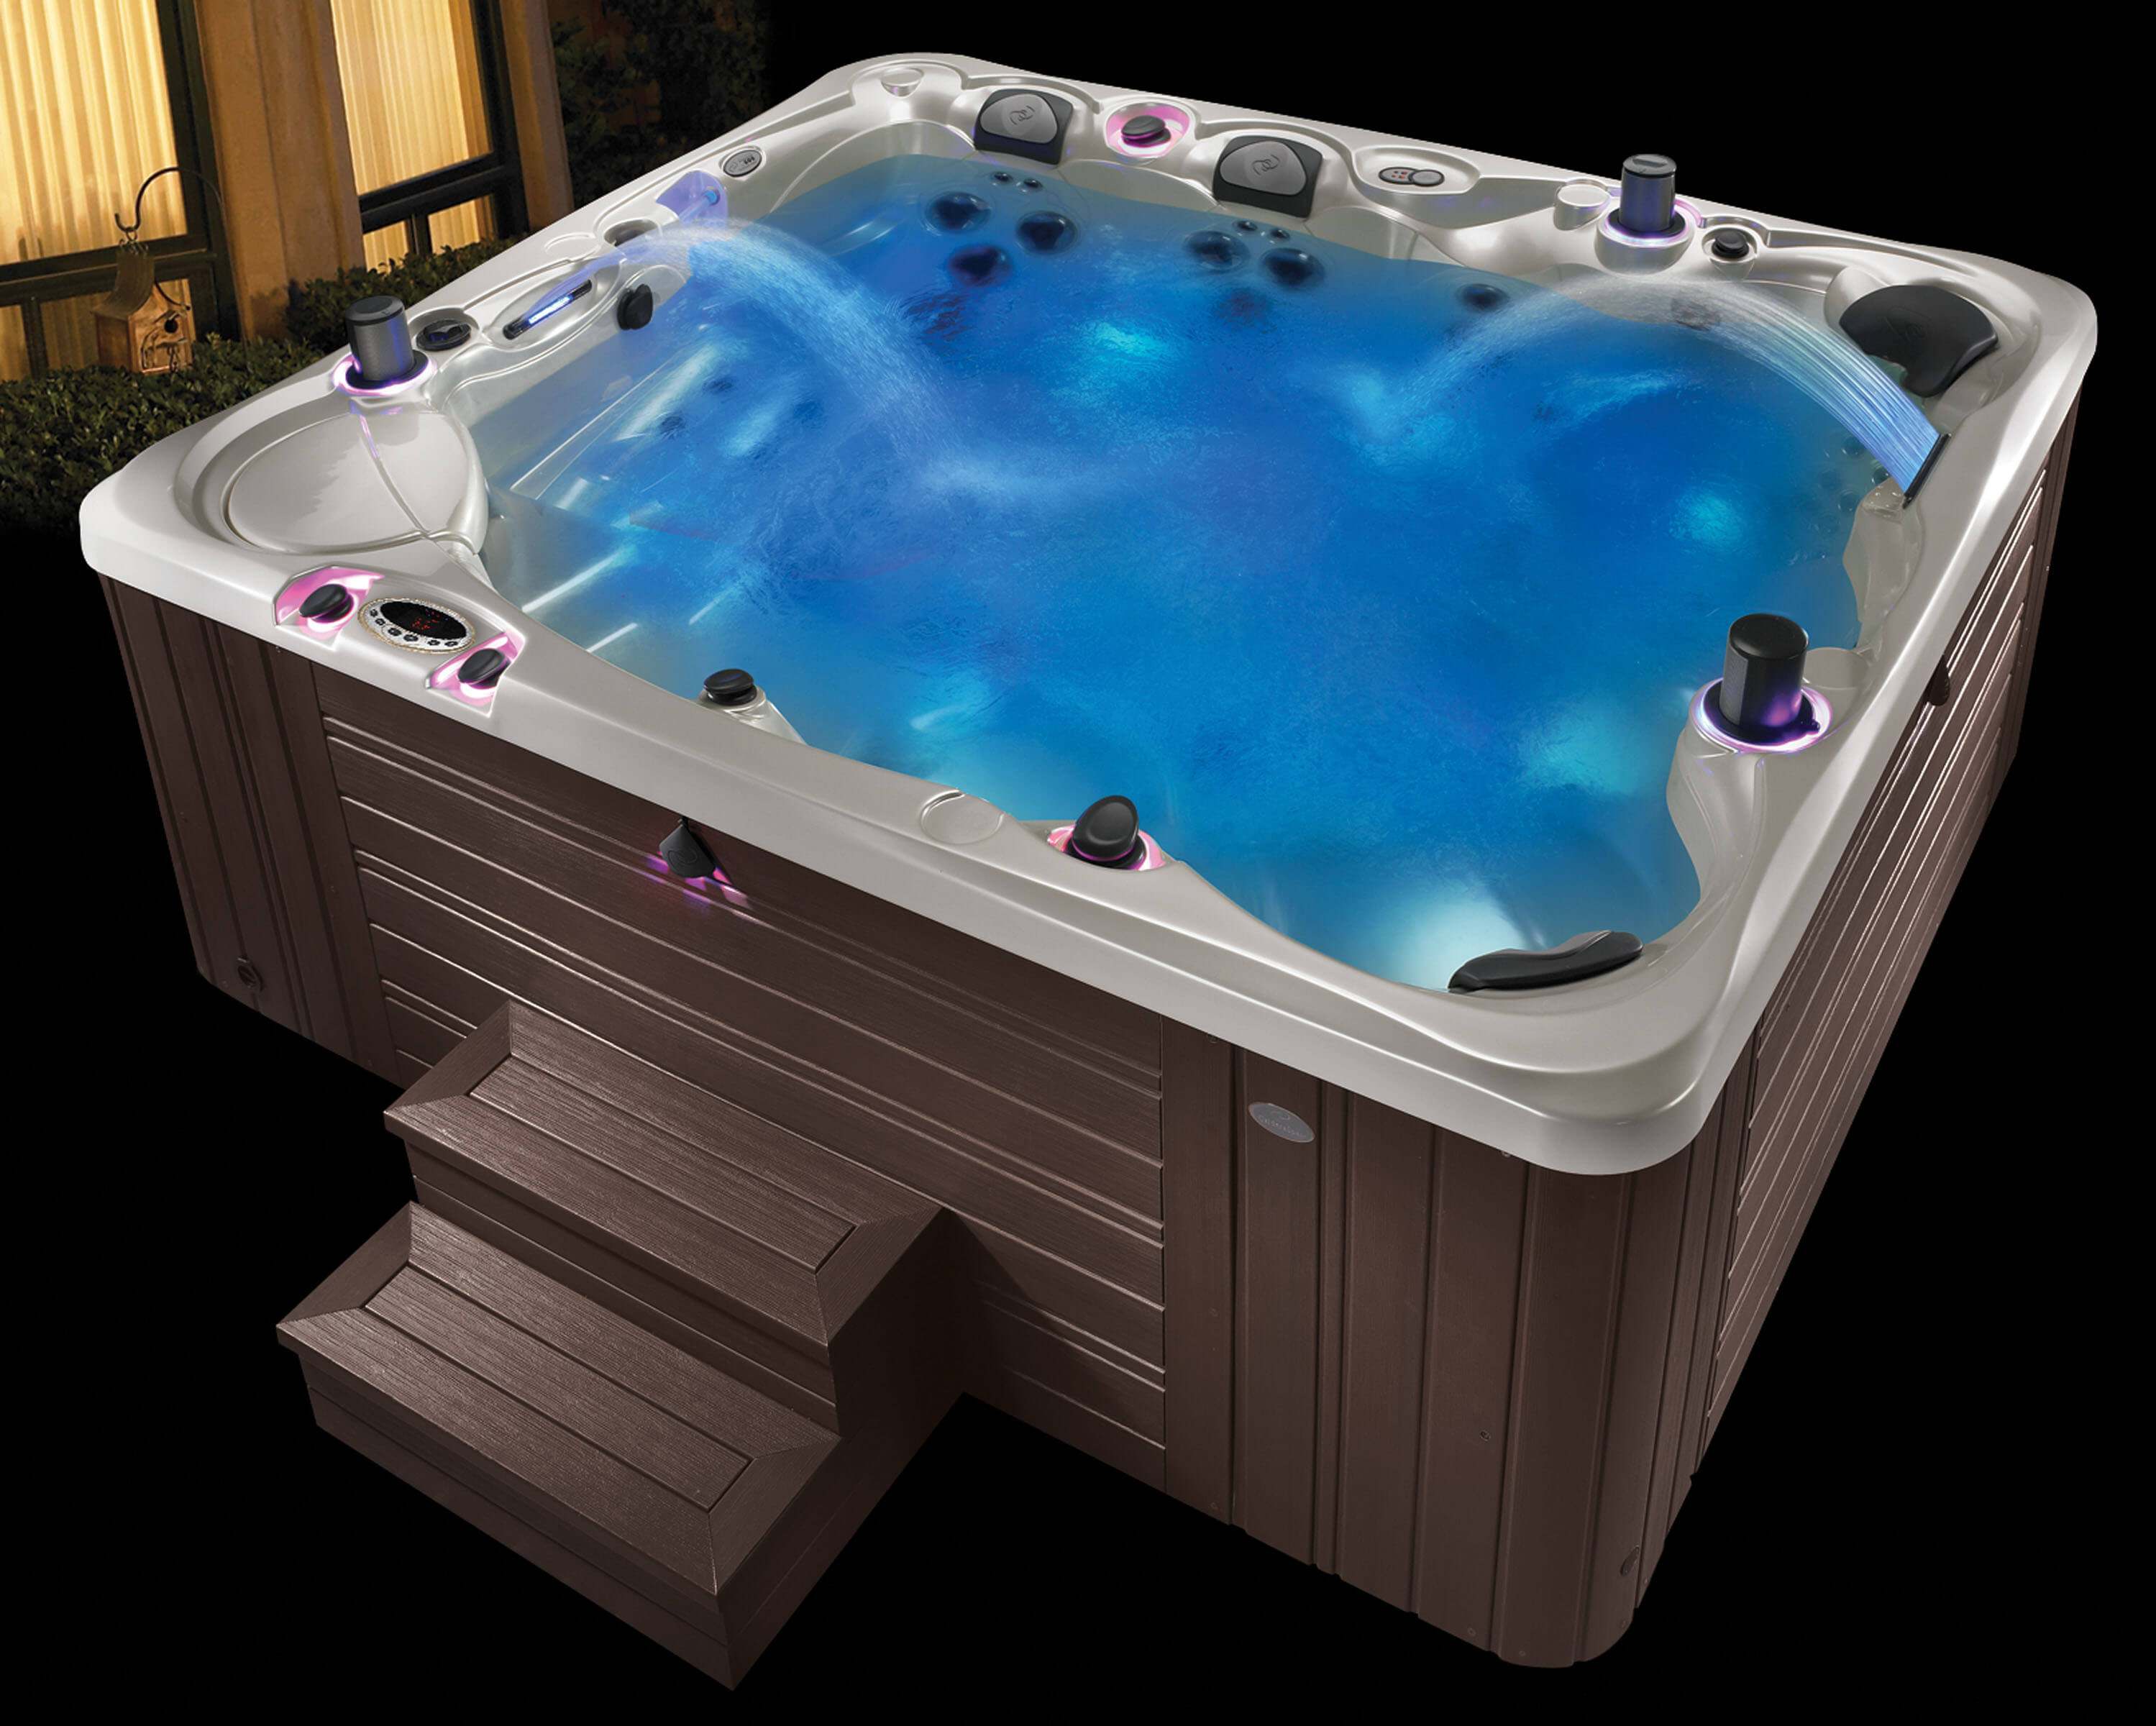 Special Caldera Hot Tub Pricing